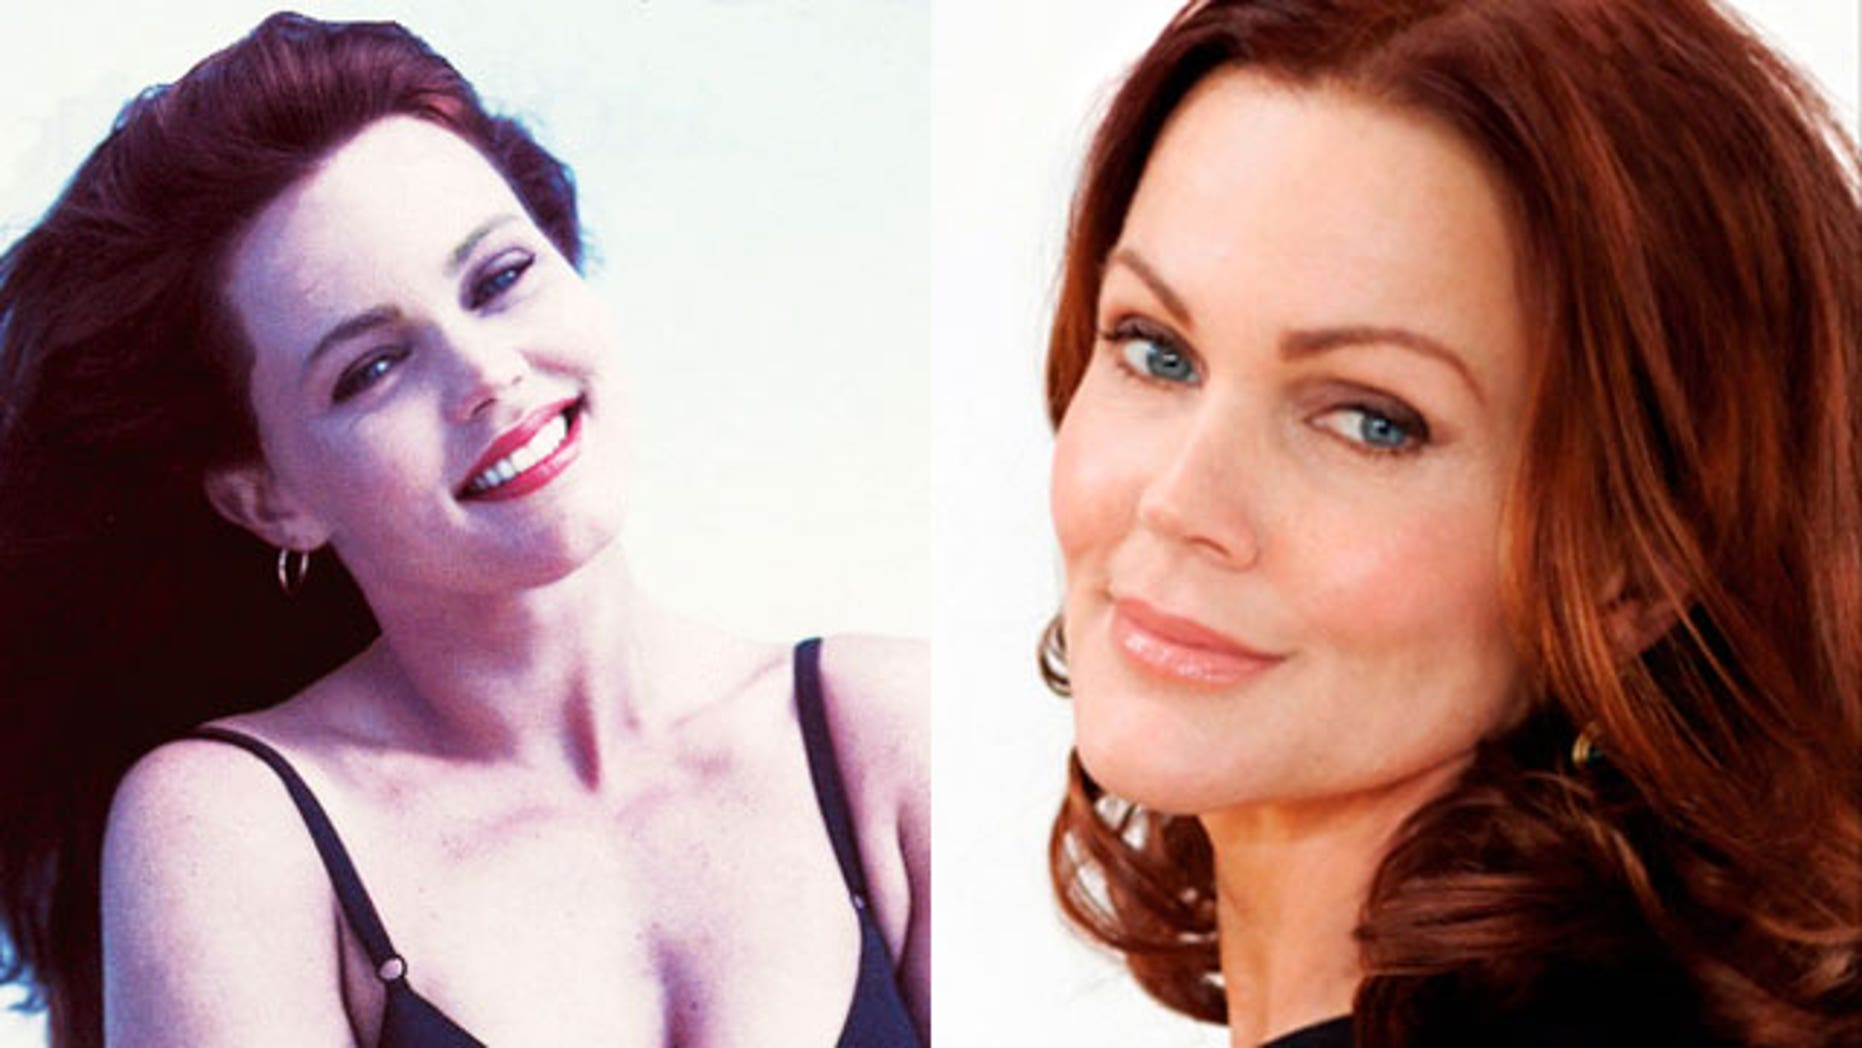 Belinda Carlisle, left, during her years struggling with addiction and right on the cover of her new memoir.